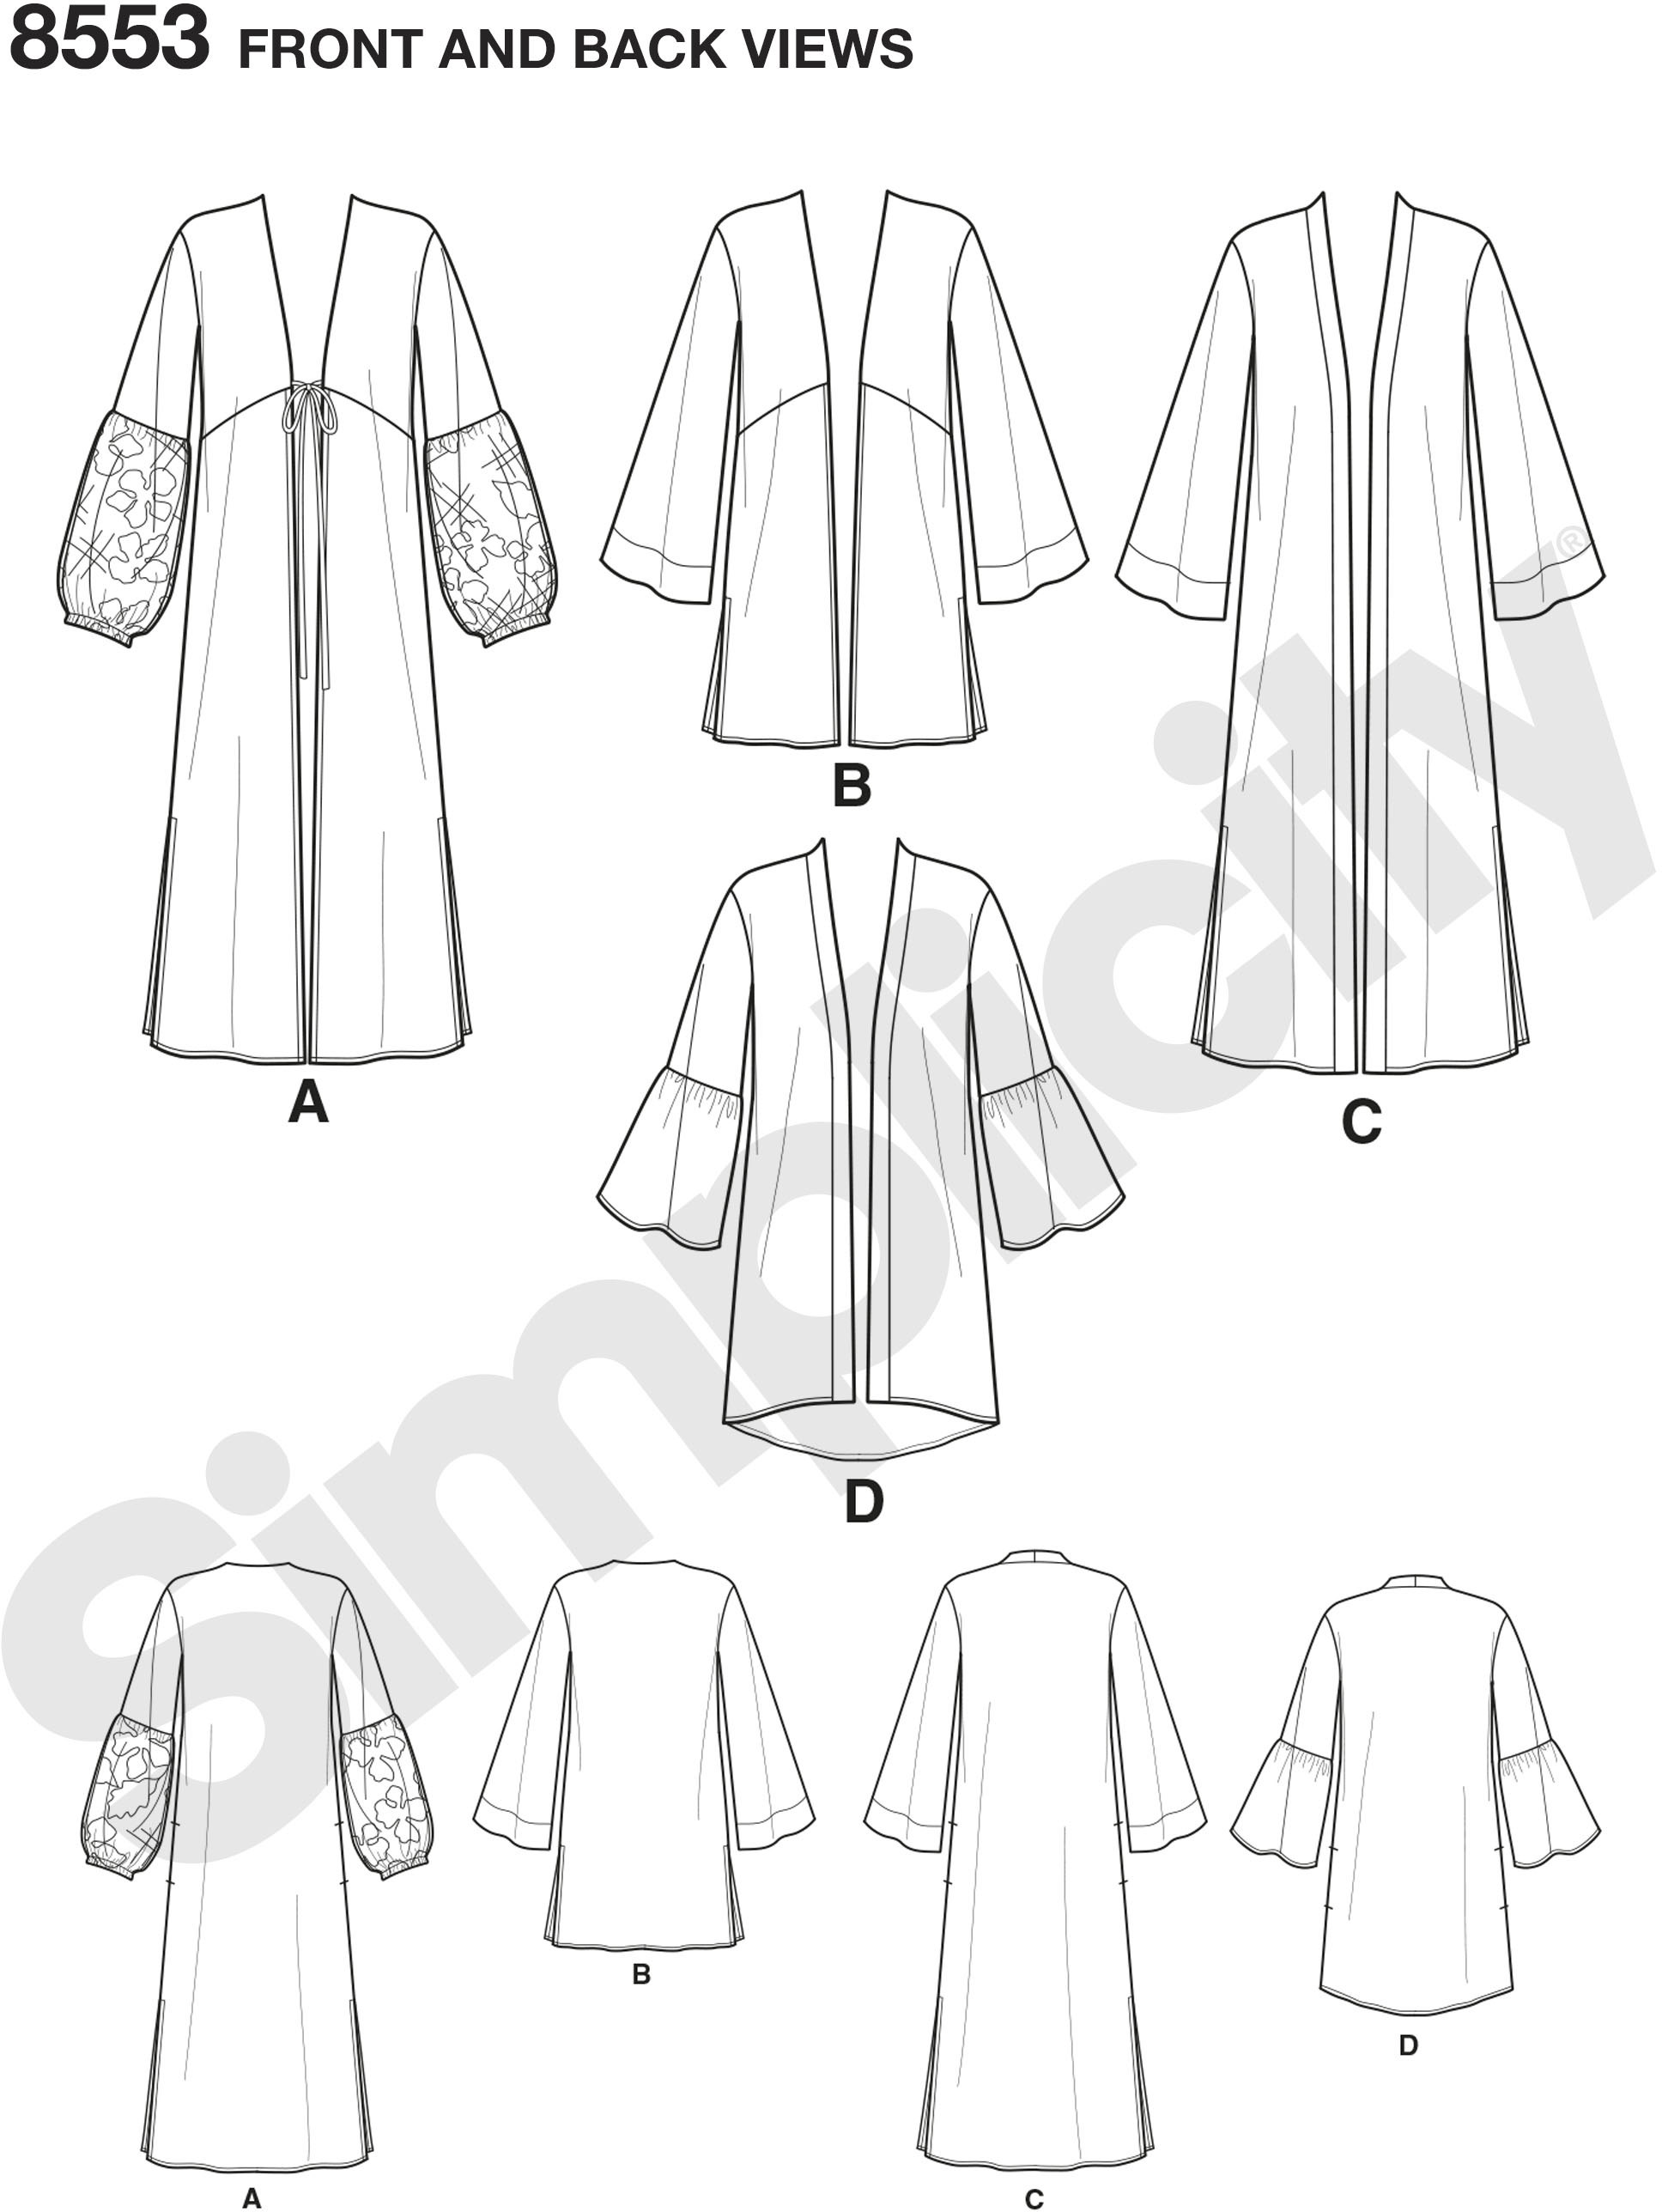 Create Misses easy-to-sew kimono or folk robe style jackets by Simplicity with sleeve and front variations. Create a statement sleeve with lace overlay view A or a ruffle view D. In a print or solid, these cover-ups are a must-have in any wardrobe.